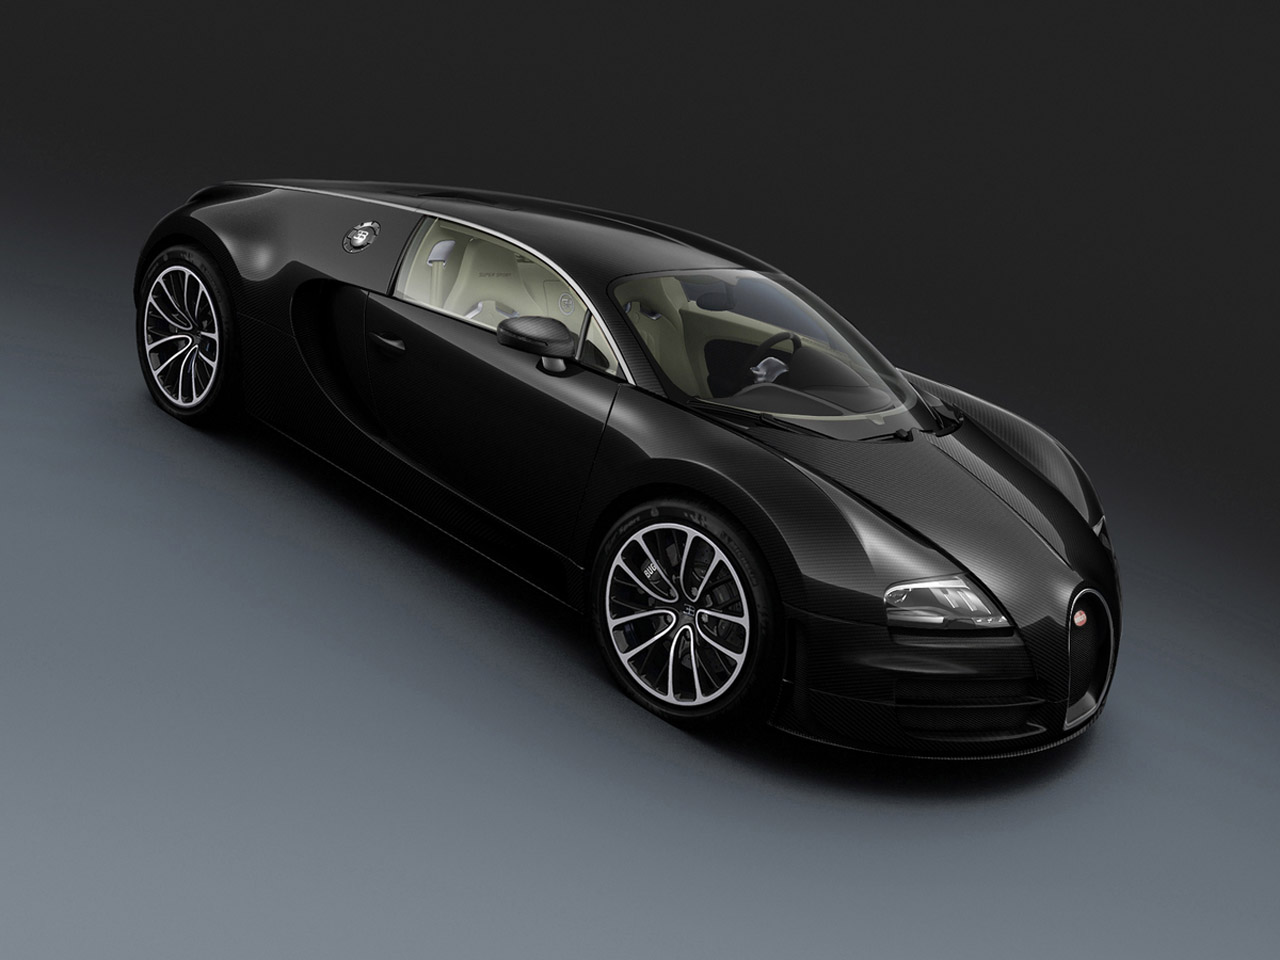 Bugatti Veyron does Asia with speed and style